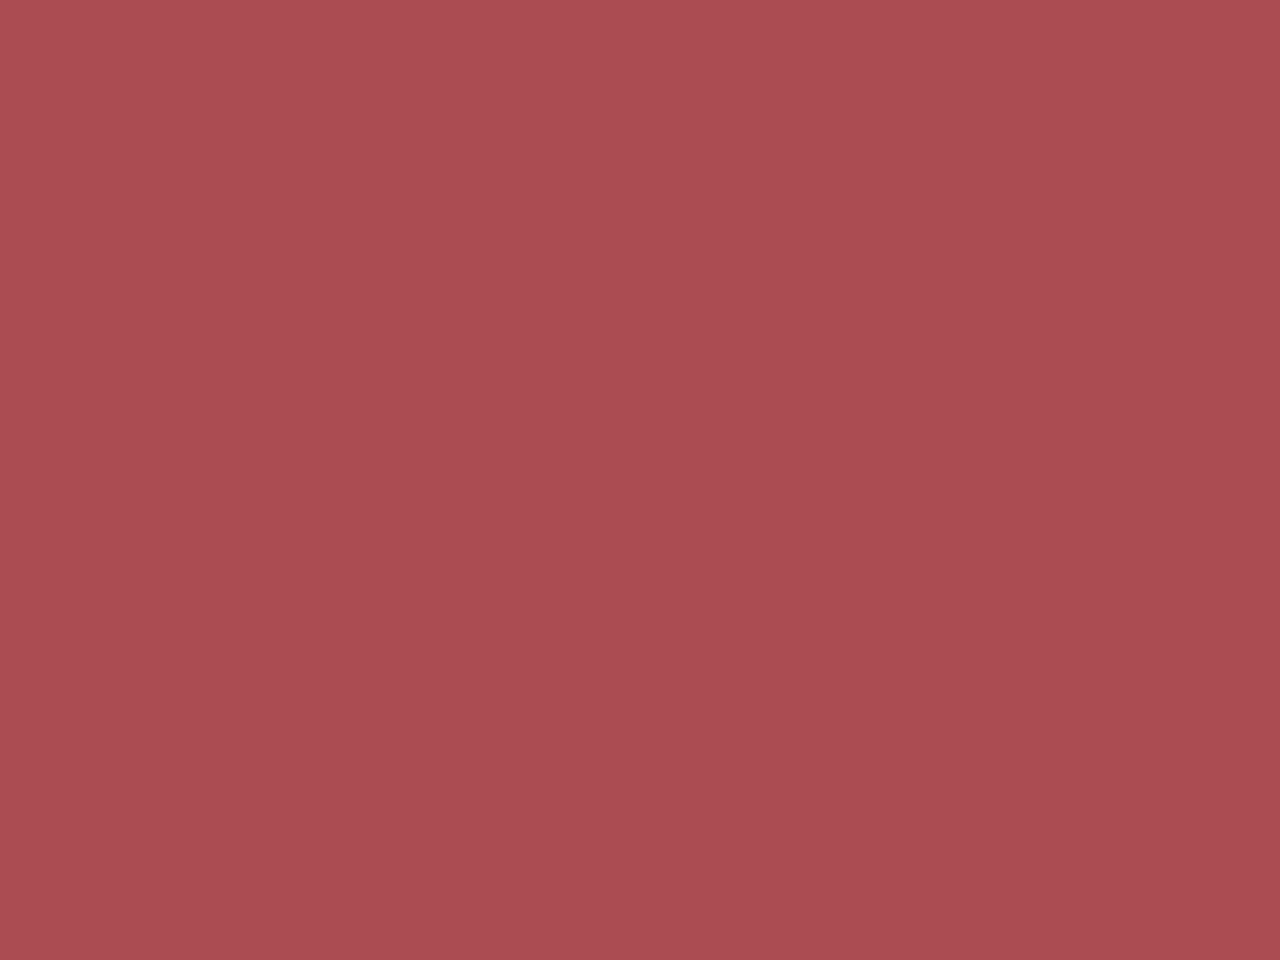 1280x960 English Red Solid Color Background